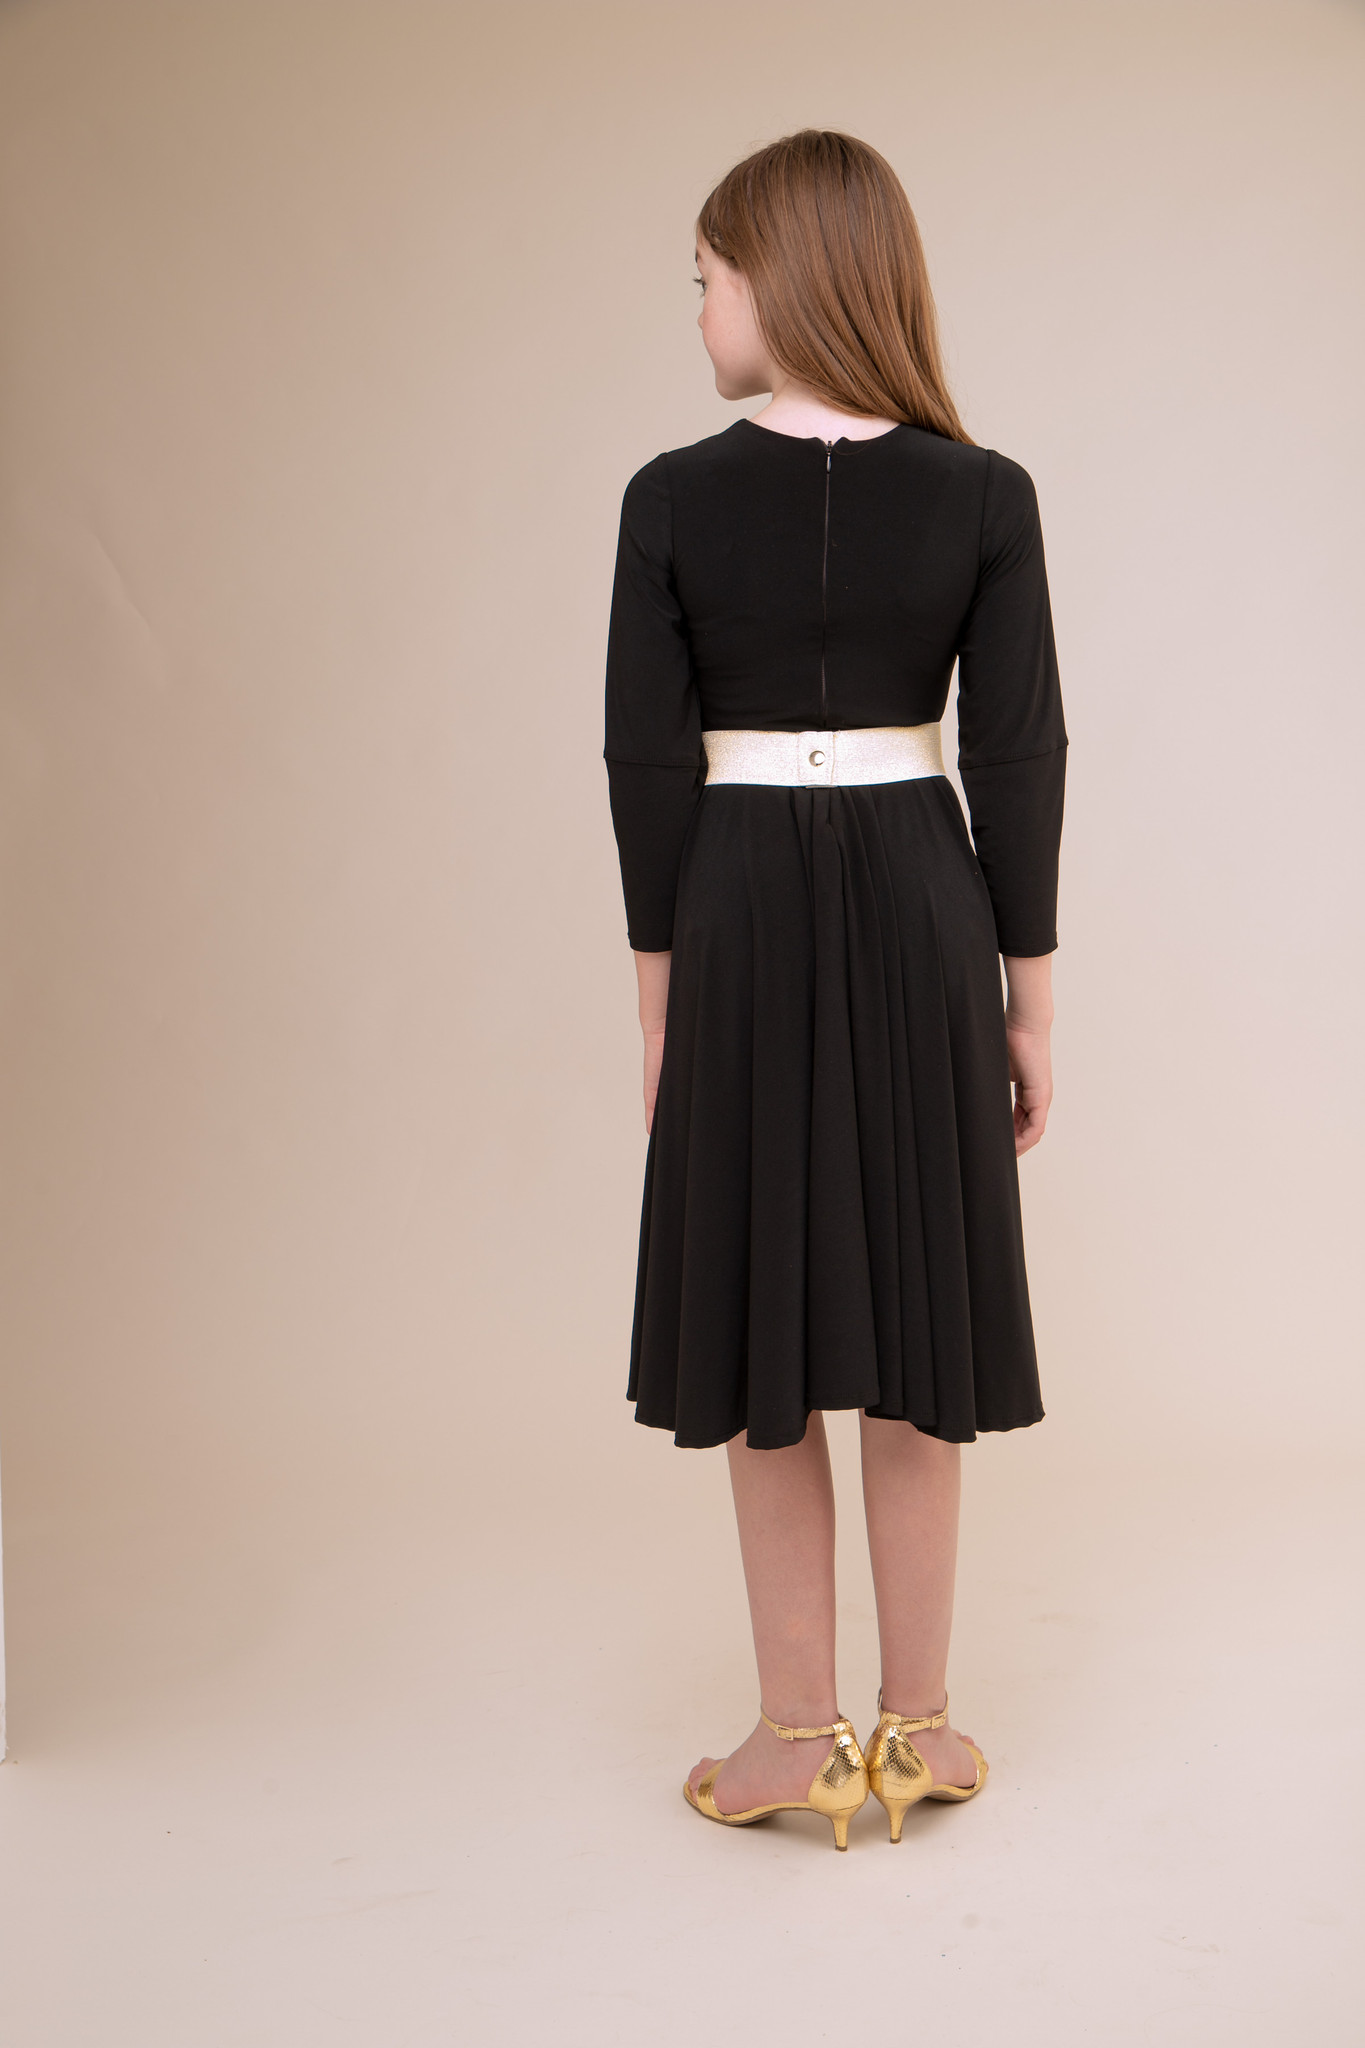 Black Pleated Dress with Detailed Sleeve in Longer Length